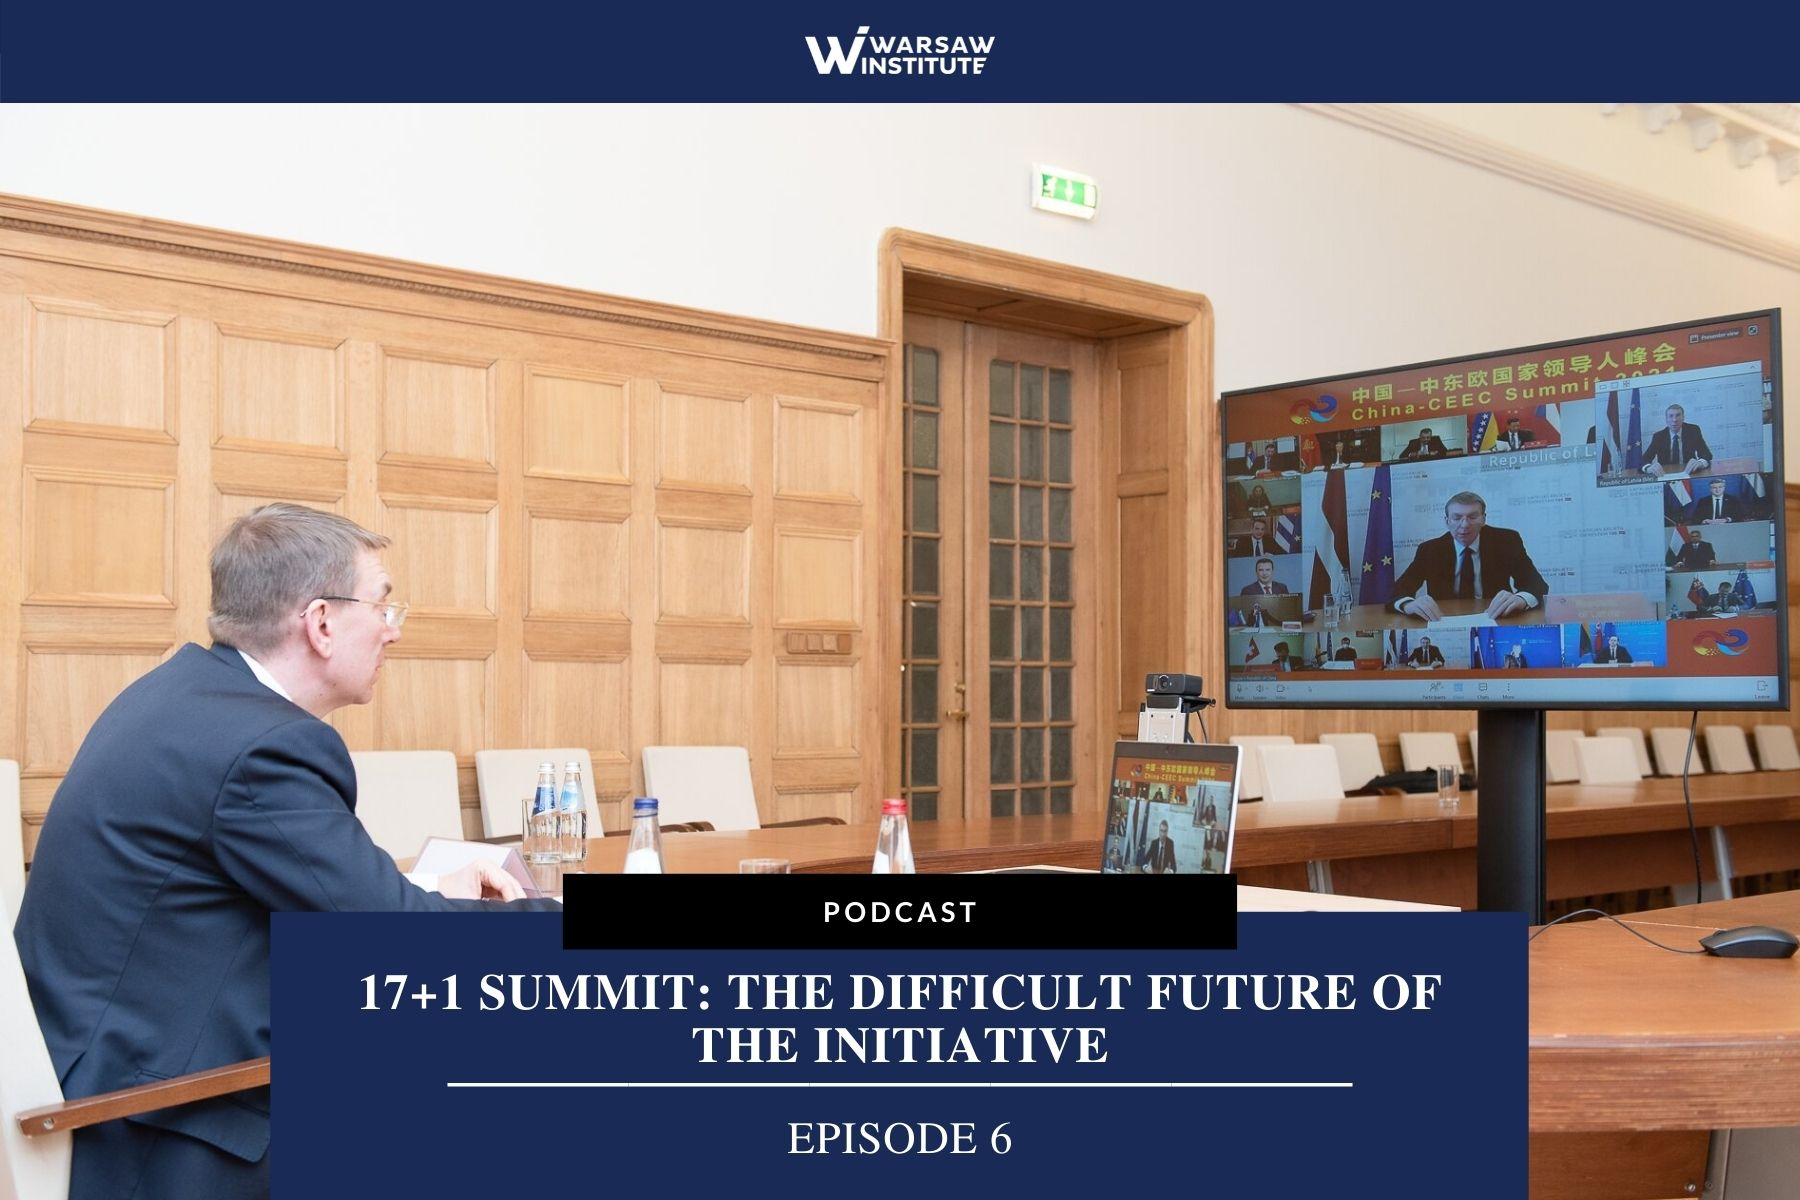 17+1 Summit: The Difficult Future of the Initiative – Podcast